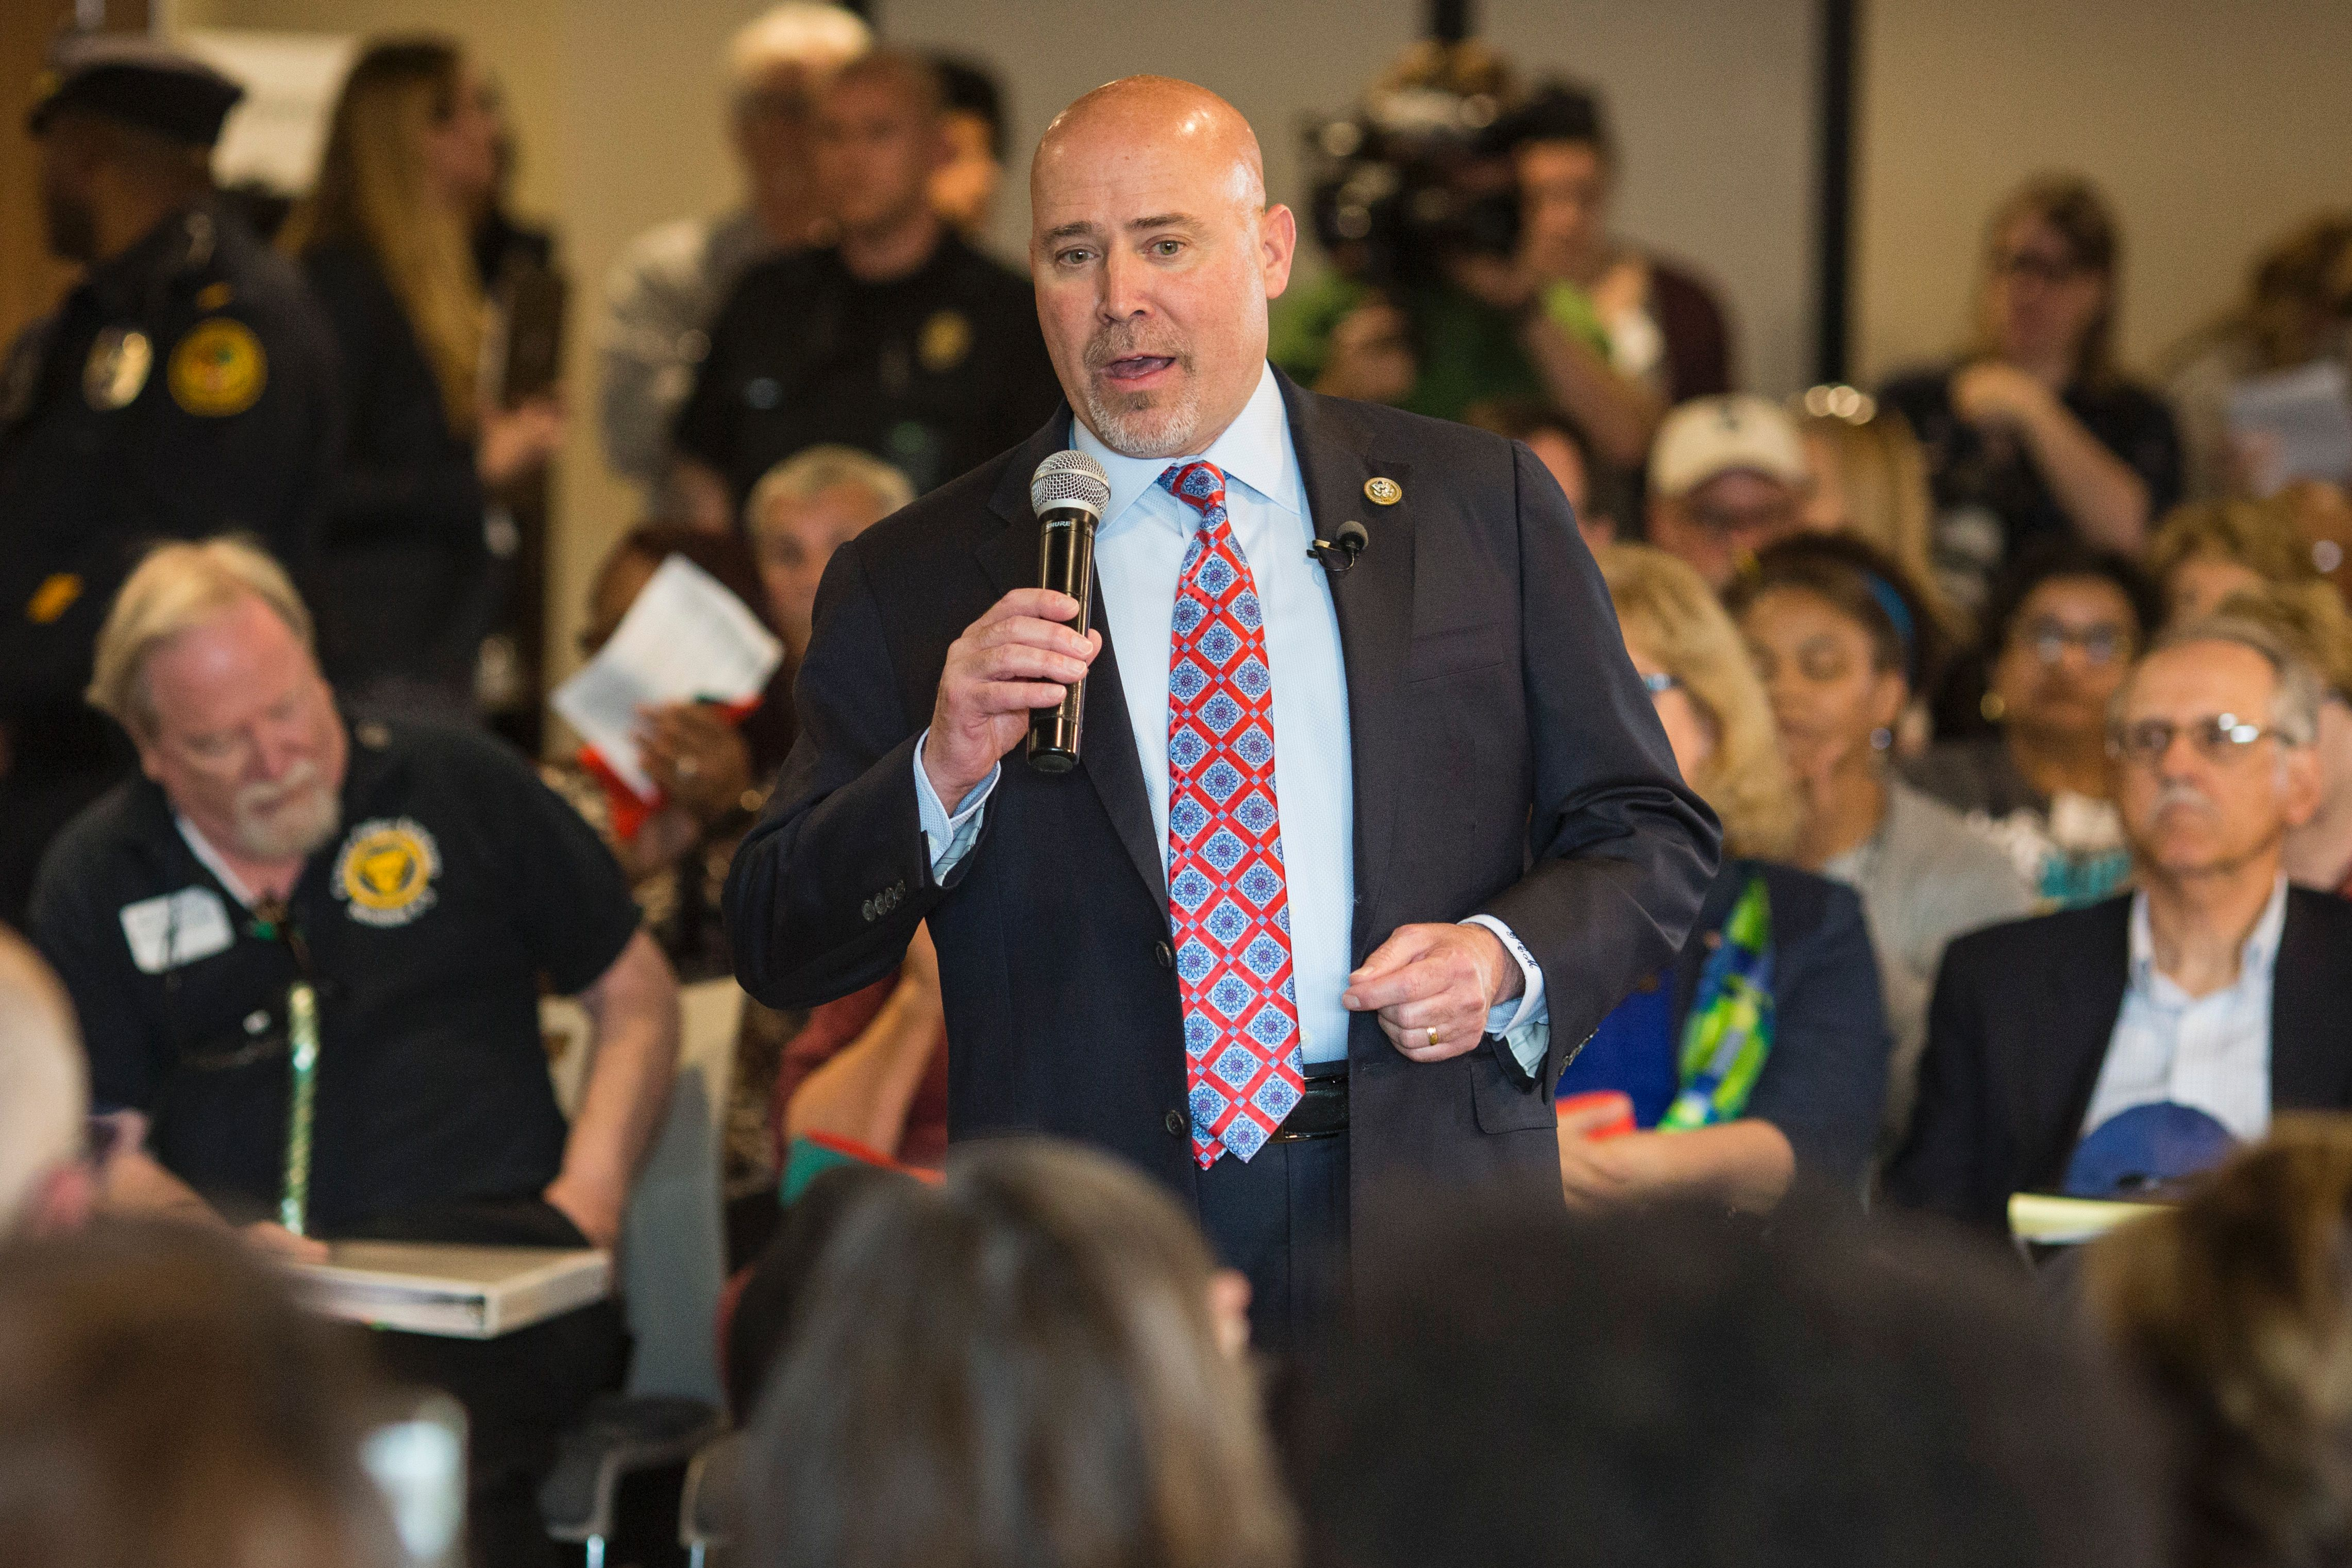 US Representative Tom MacArthur (R-NJ) speaks to constituents during a town hall meeting in Willingboro, New Jersey on May 10, 2017. MacArthur wrote the amendment to the American Health Care Act that revived the failed bill, delivering a legislative victory for US President Donald Trump. DOMINICK REUTER/AFP/Getty Images